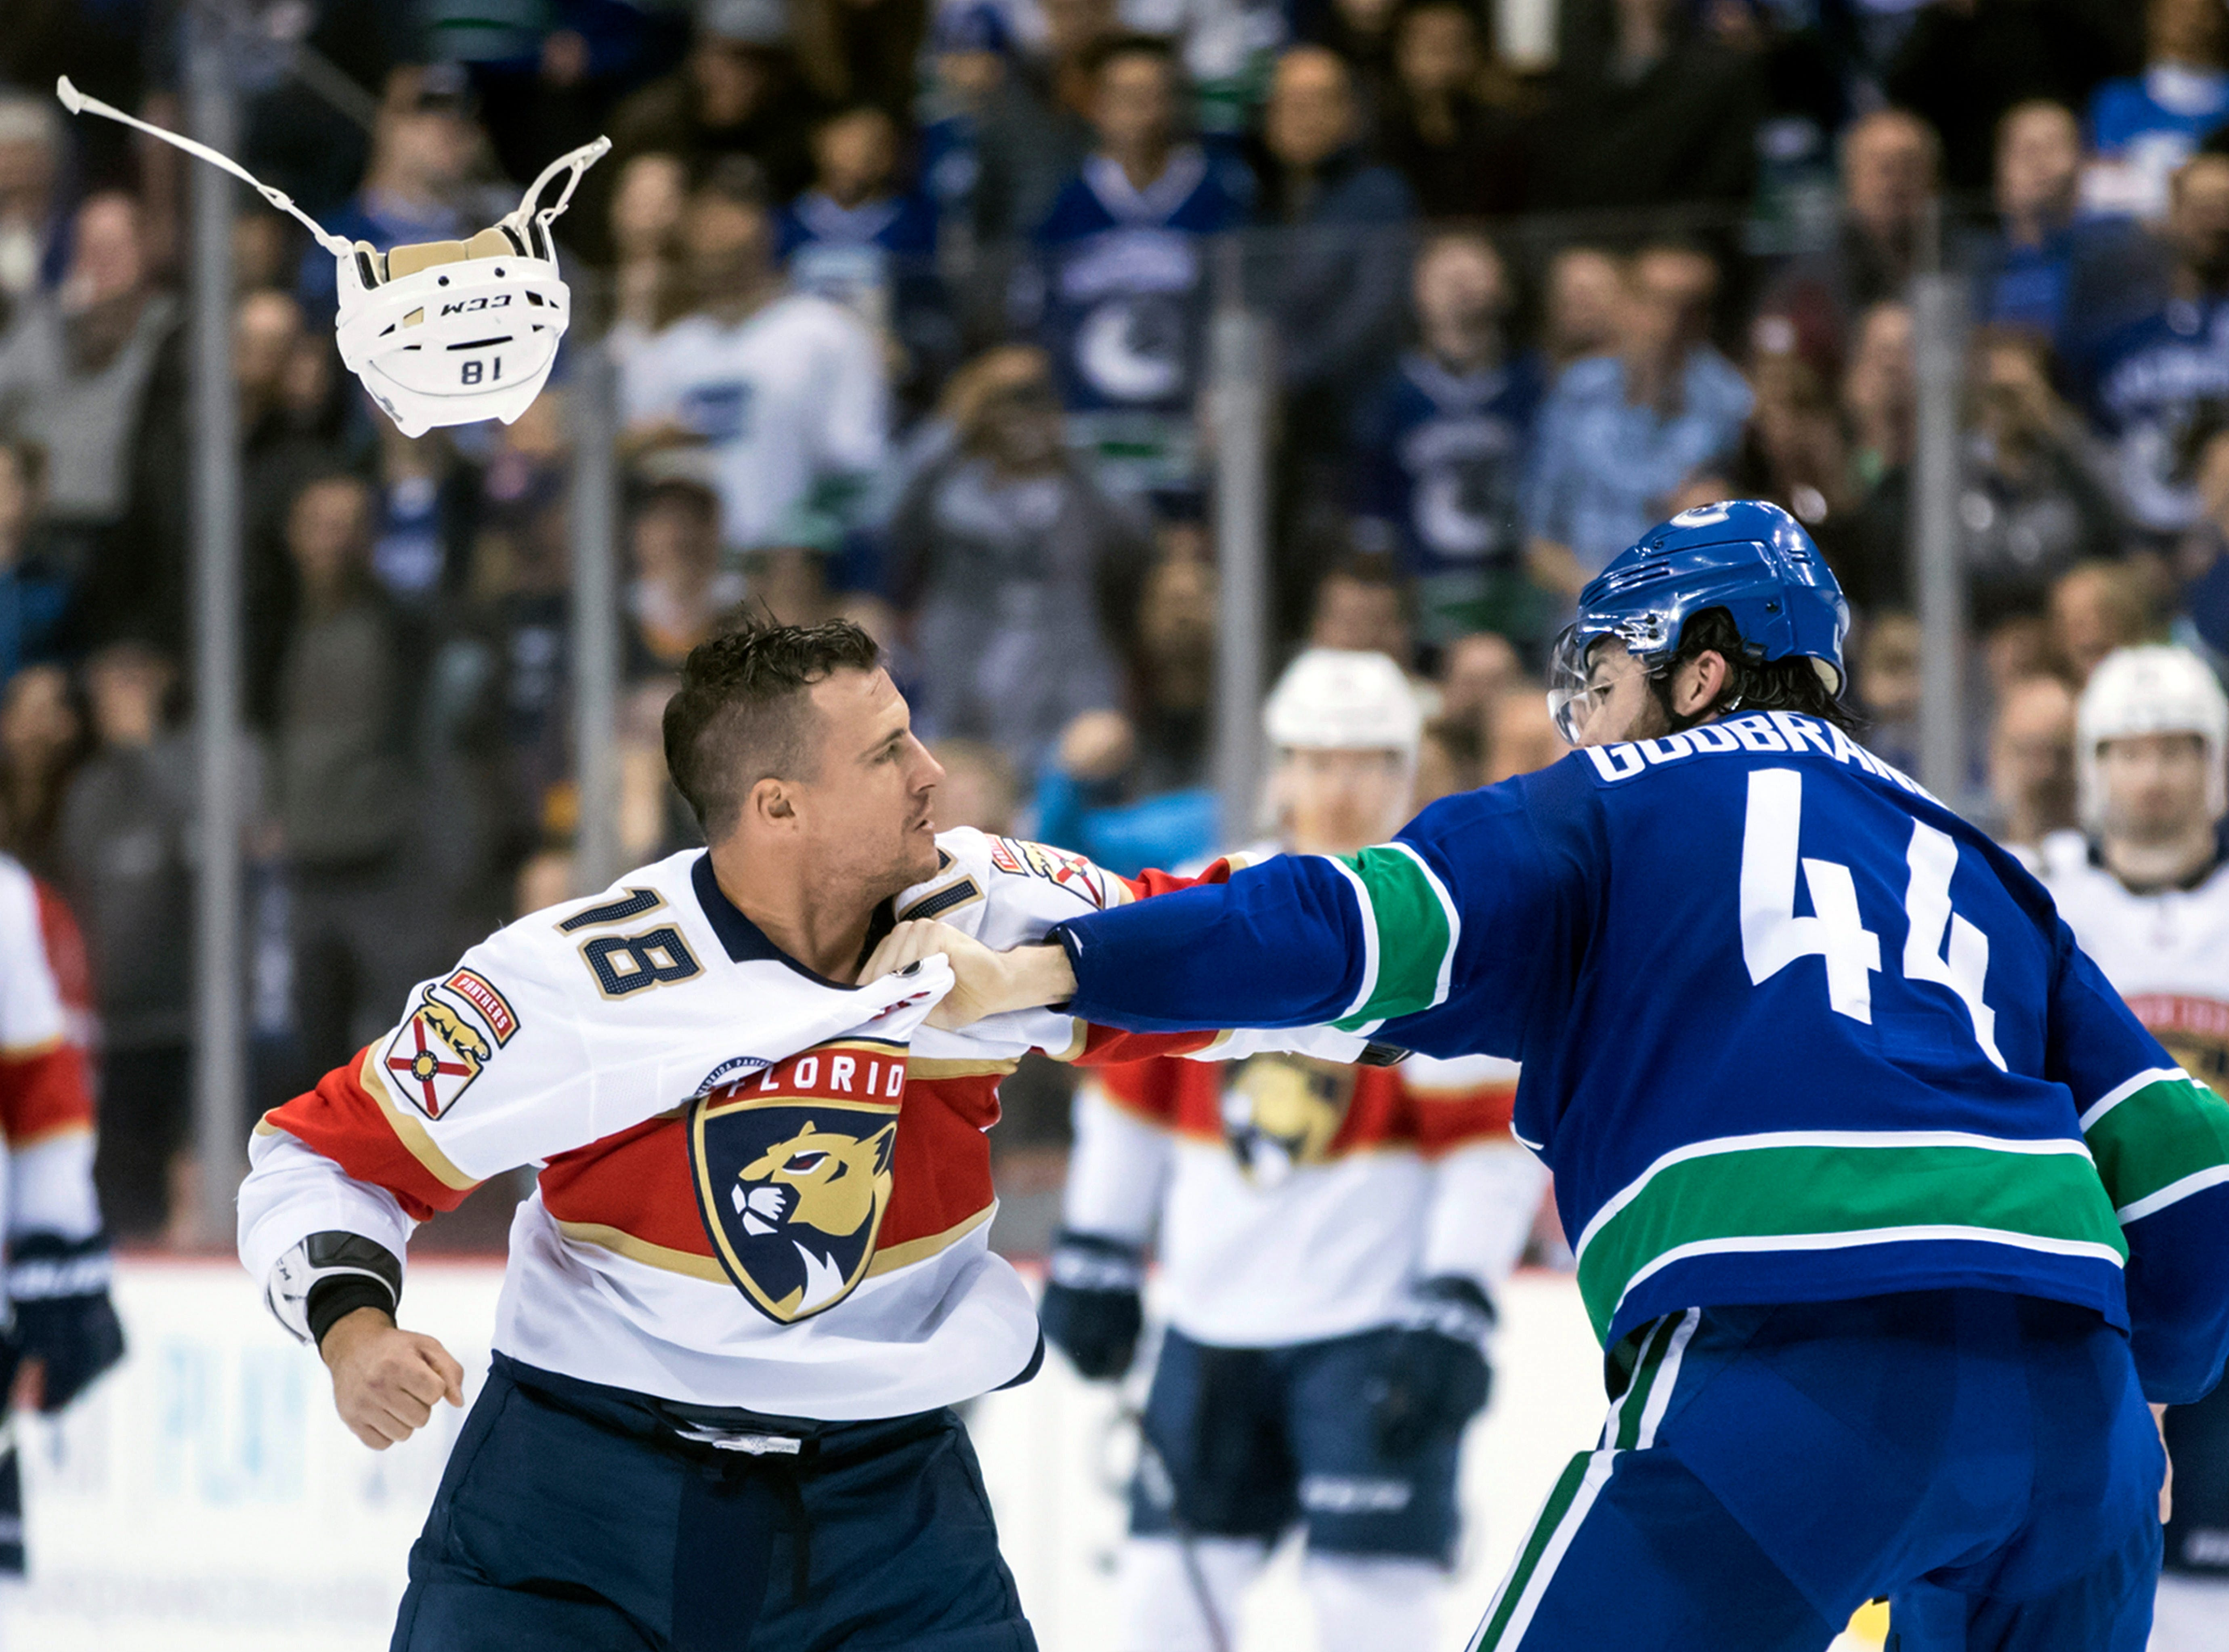 Jan. 13: Florida Panthers' Micheal Haley vs. Vancouver Canucks' Erik Gudbranson.